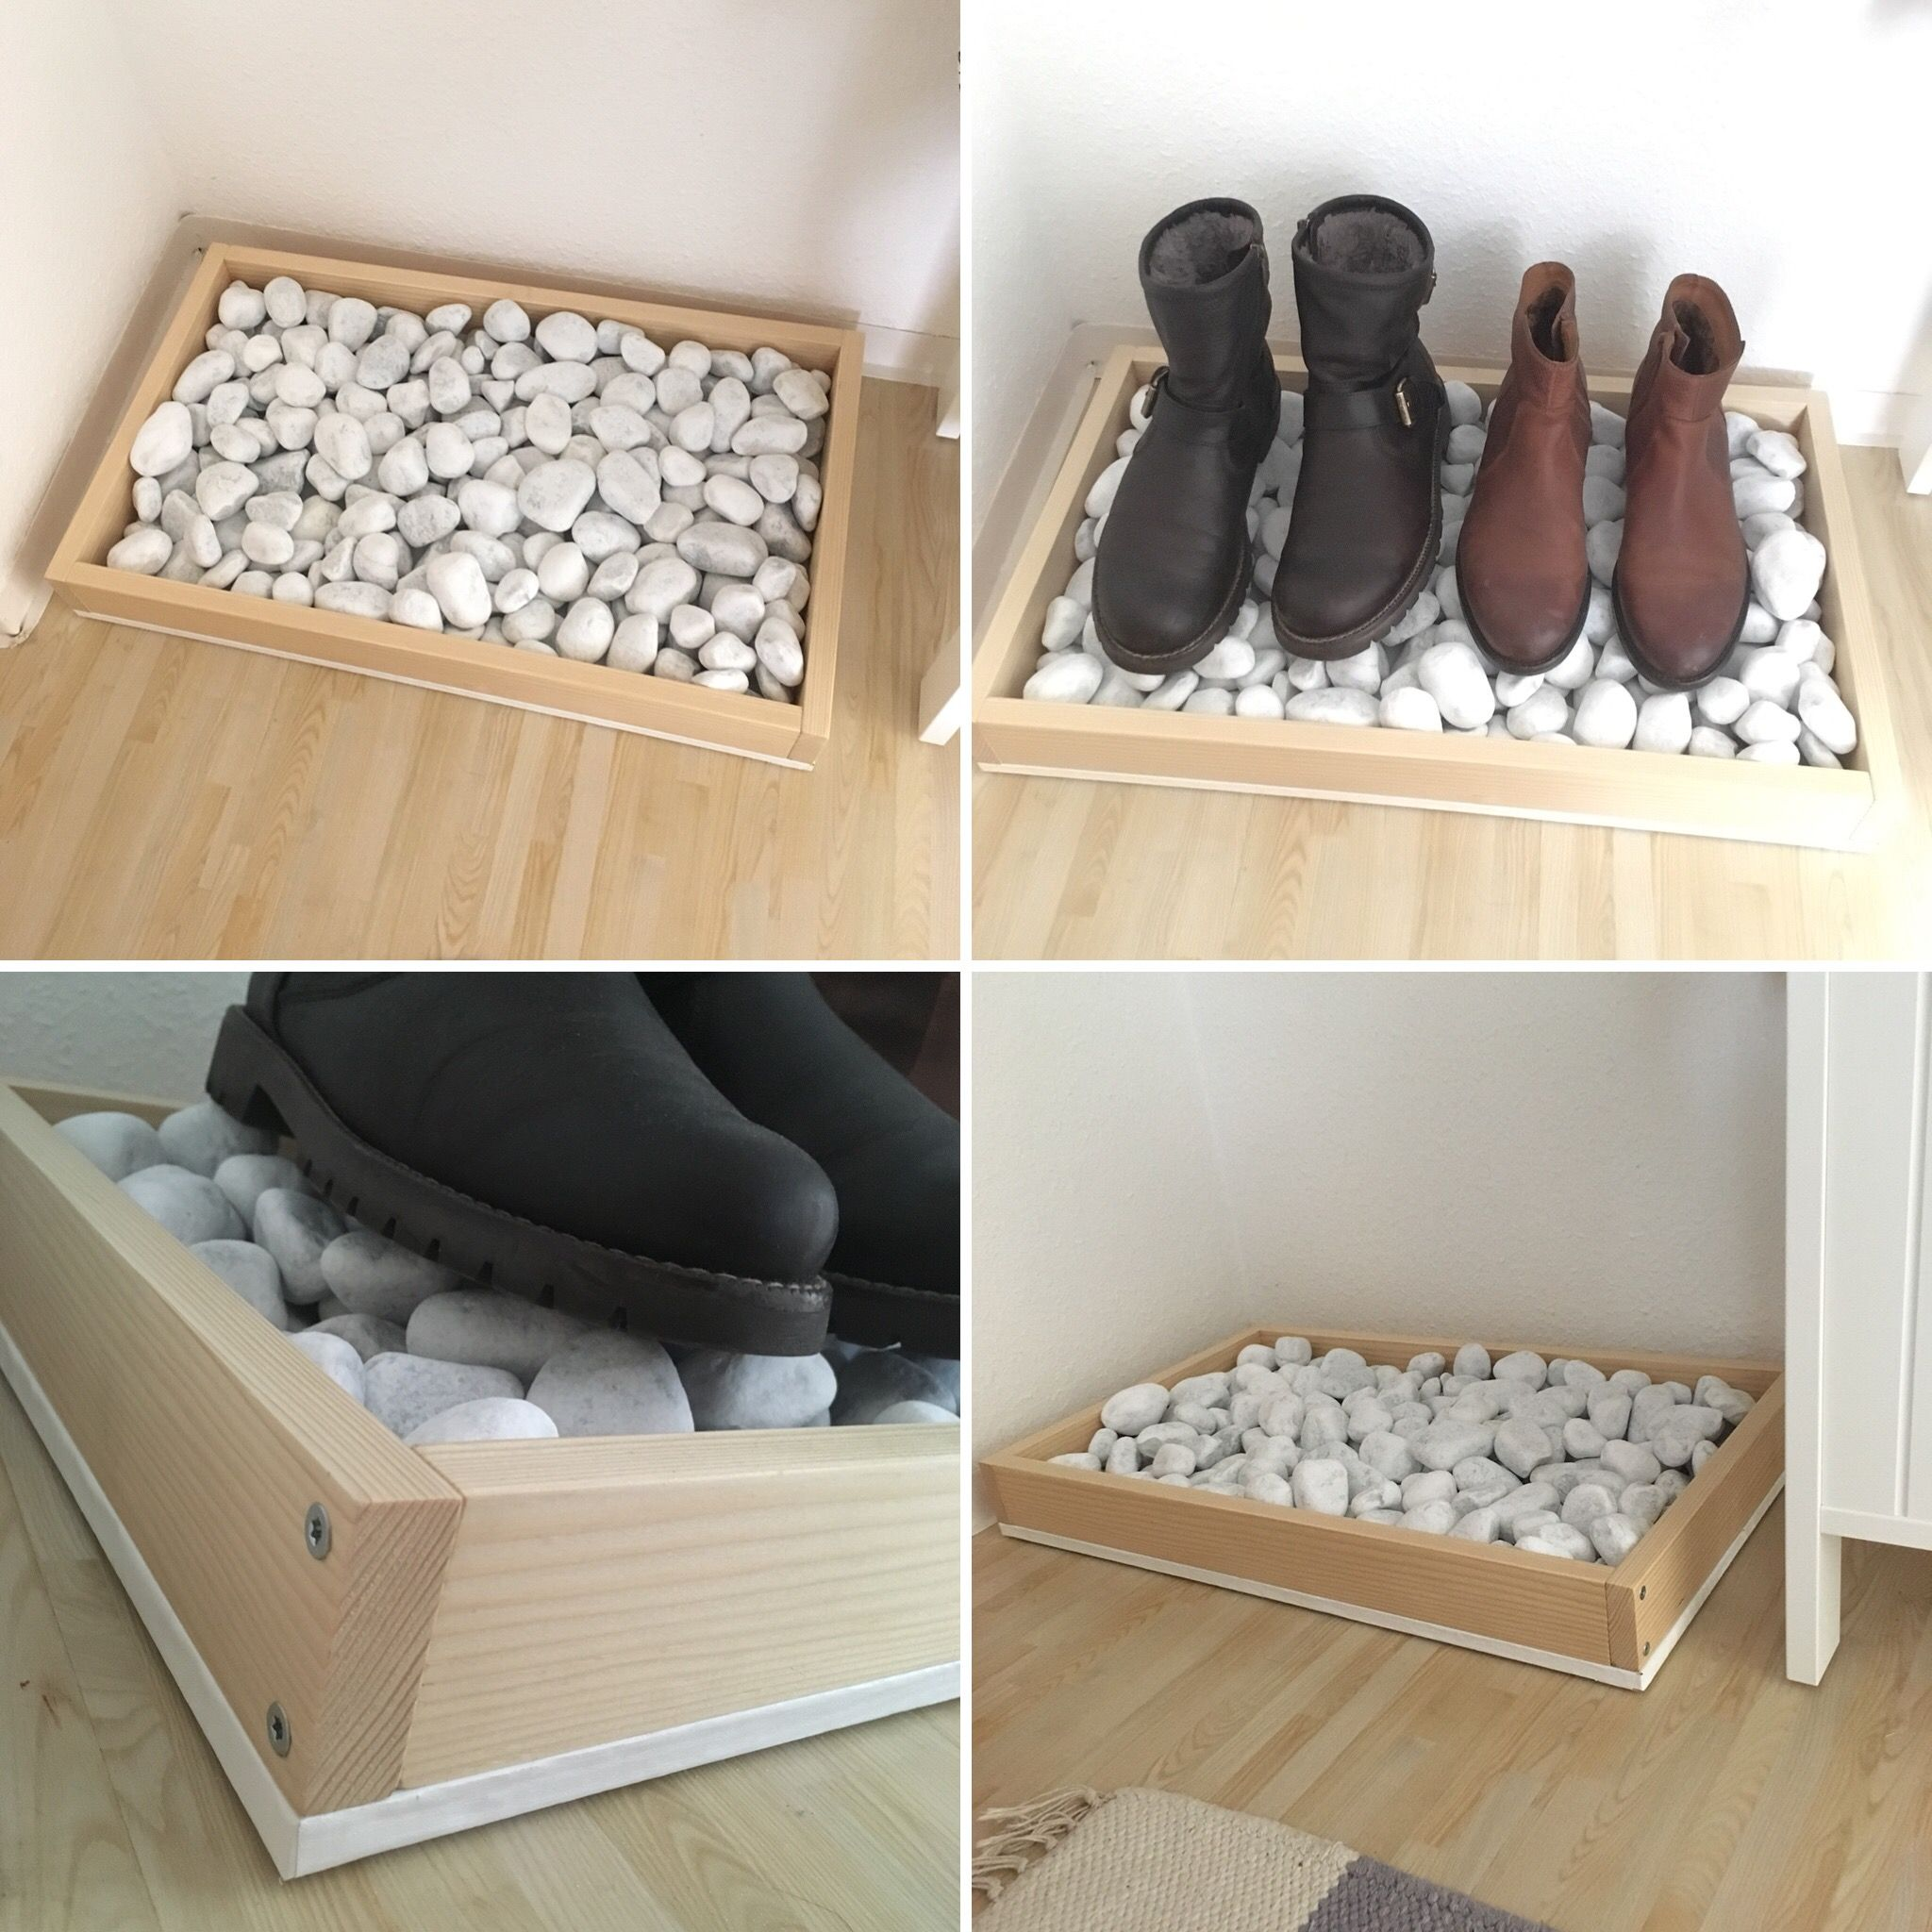 My Diy Schuhablage Aus Holz Und Steinen Diyproject Forshoes Diy Shoe Rack Wooden Diy Shoe Rack